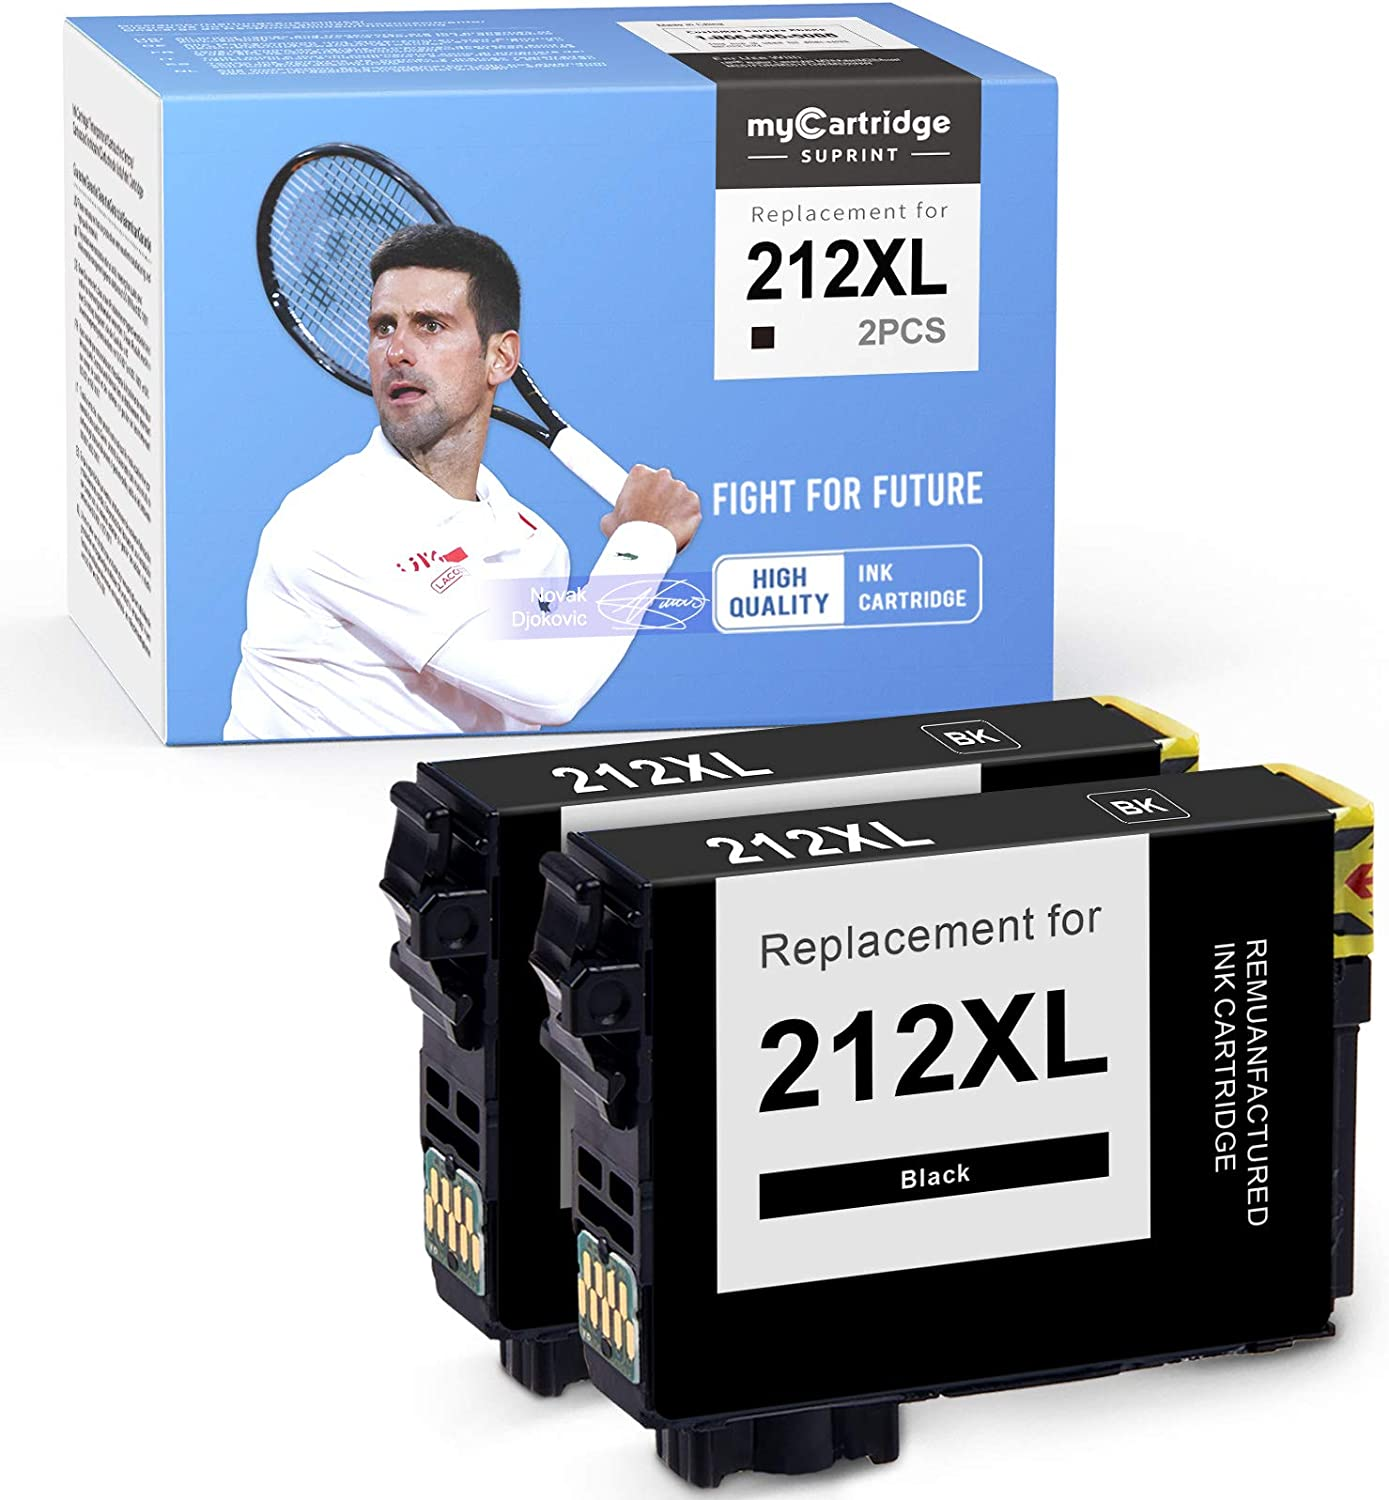 myCartridge SUPRINT Remanufactured Ink Cartridge Replacement for Epson 212XL 212 XL Black Workforce WF-2850 WF-2830 Expression Home XP-4105 XP-4100 (2-Pack)